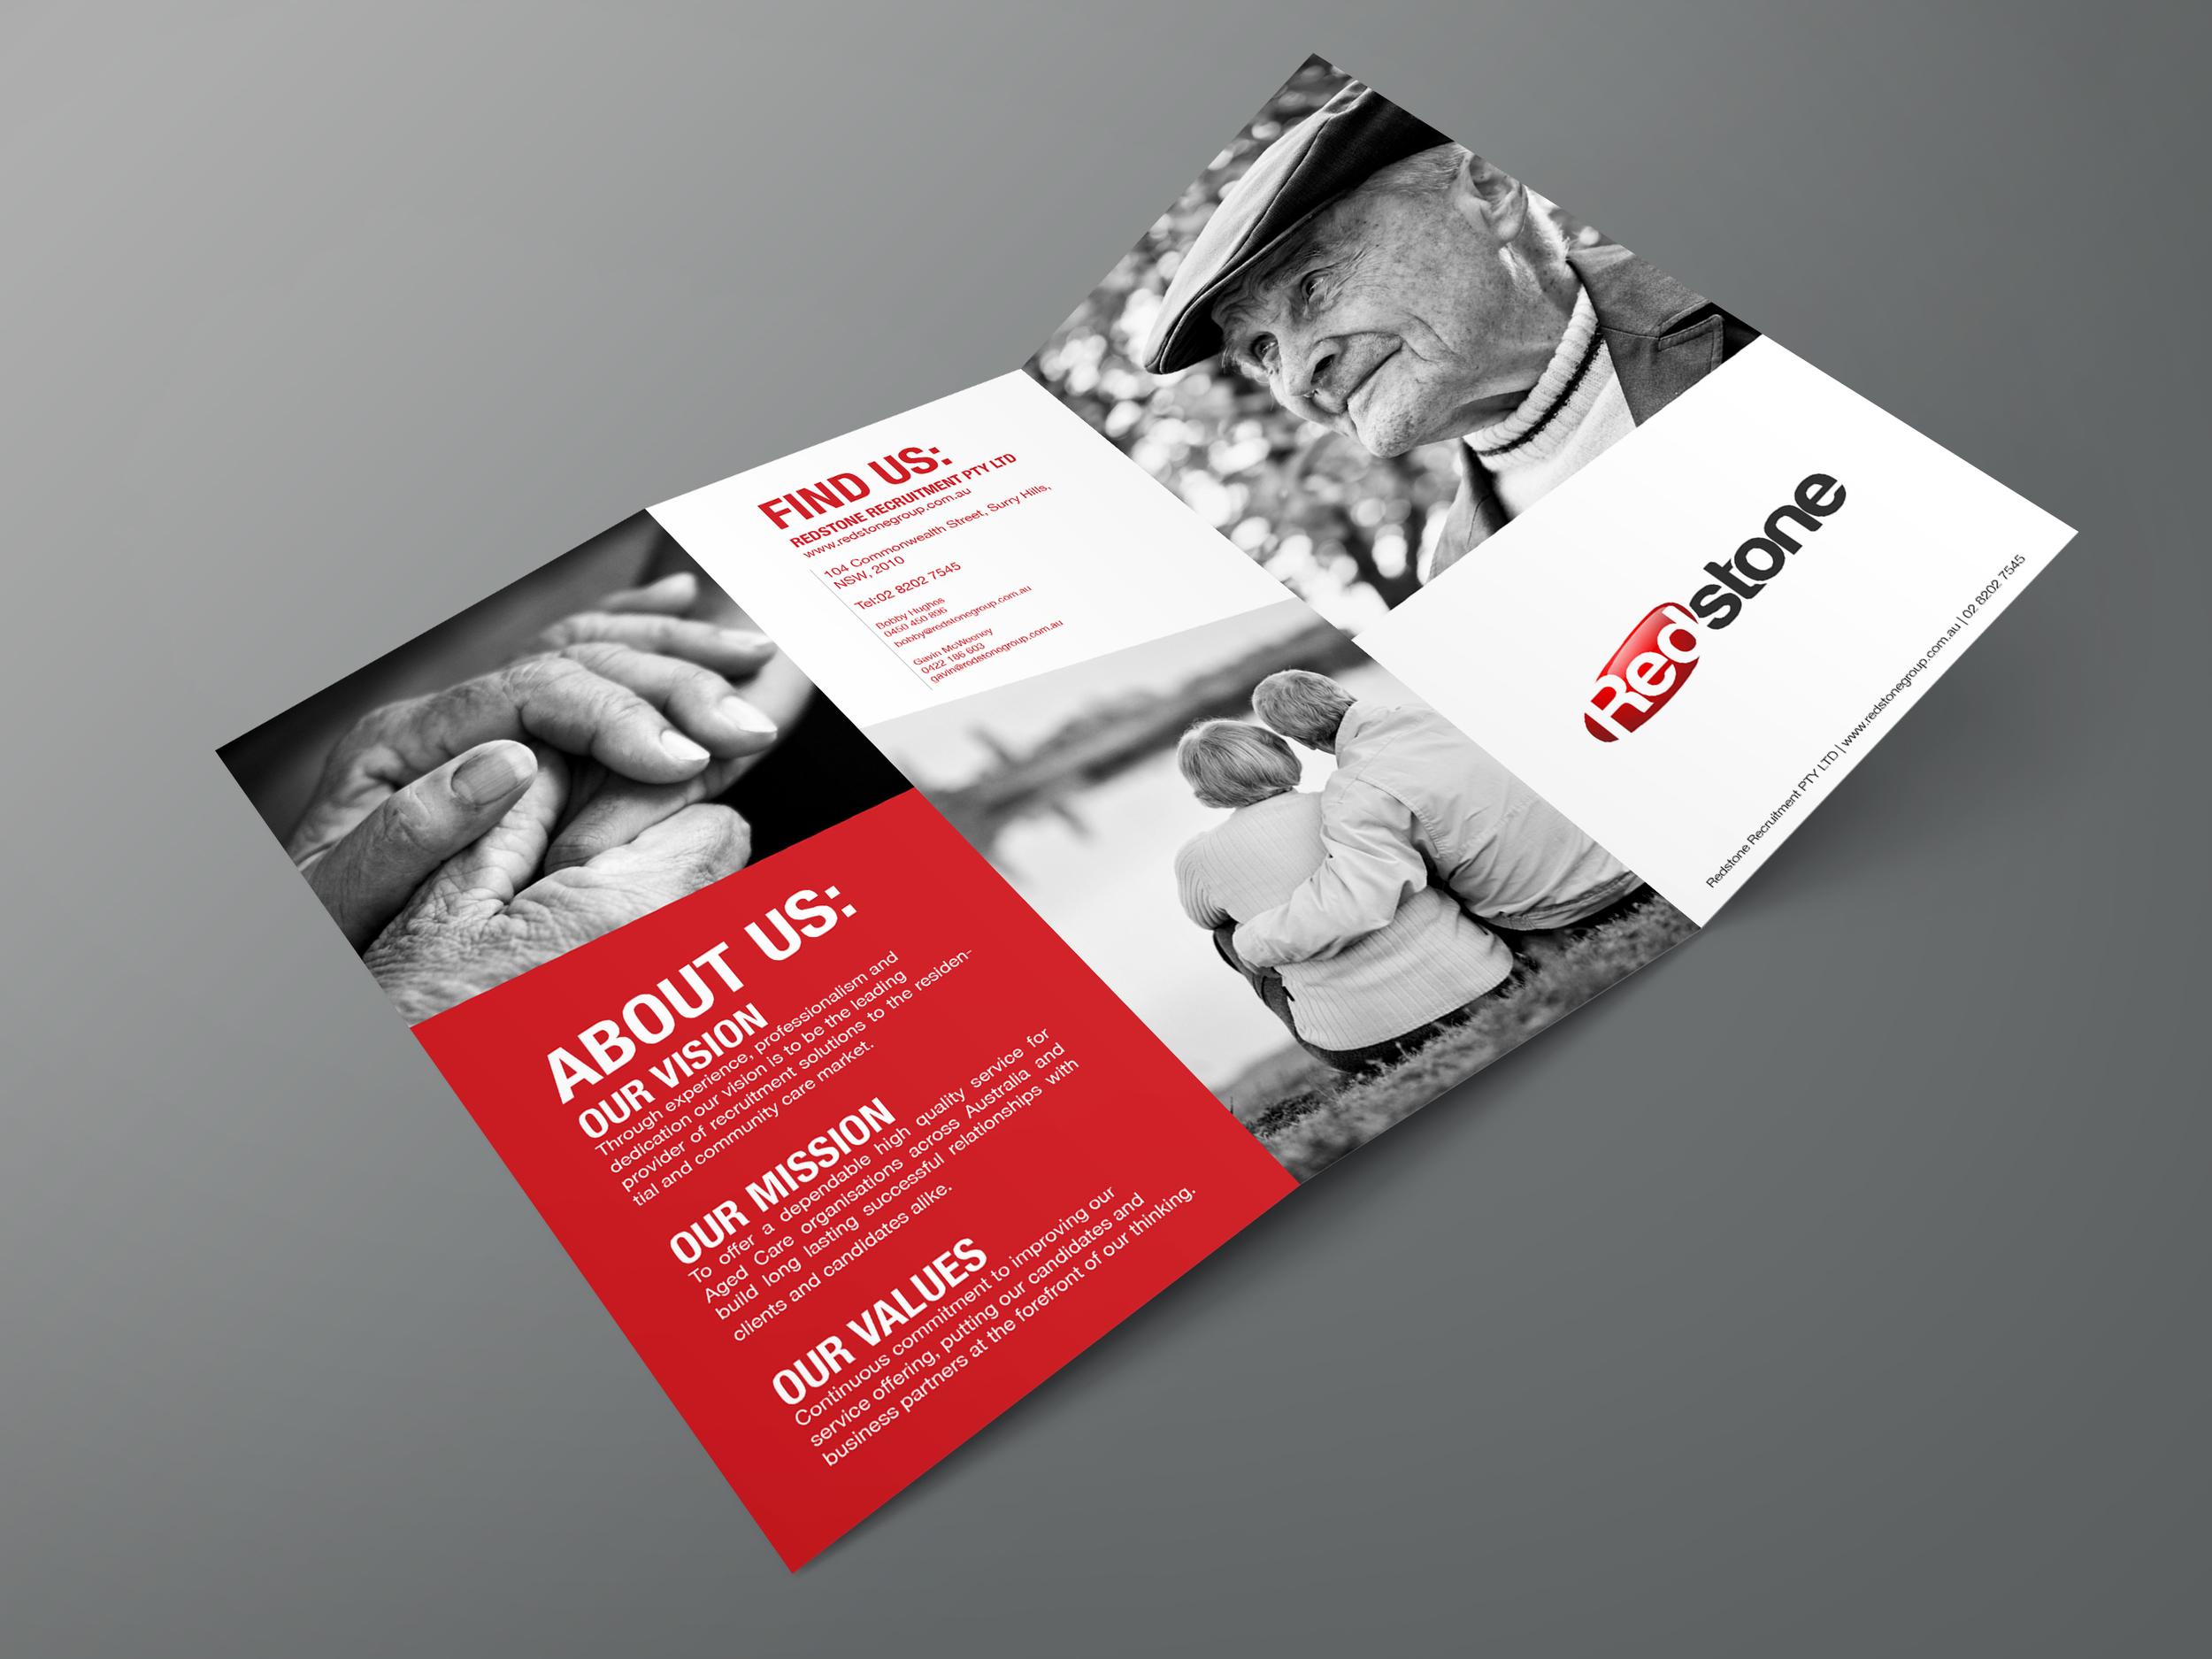 Z+Fold+Brochure+PSD+Mockup_outside_red.jpg